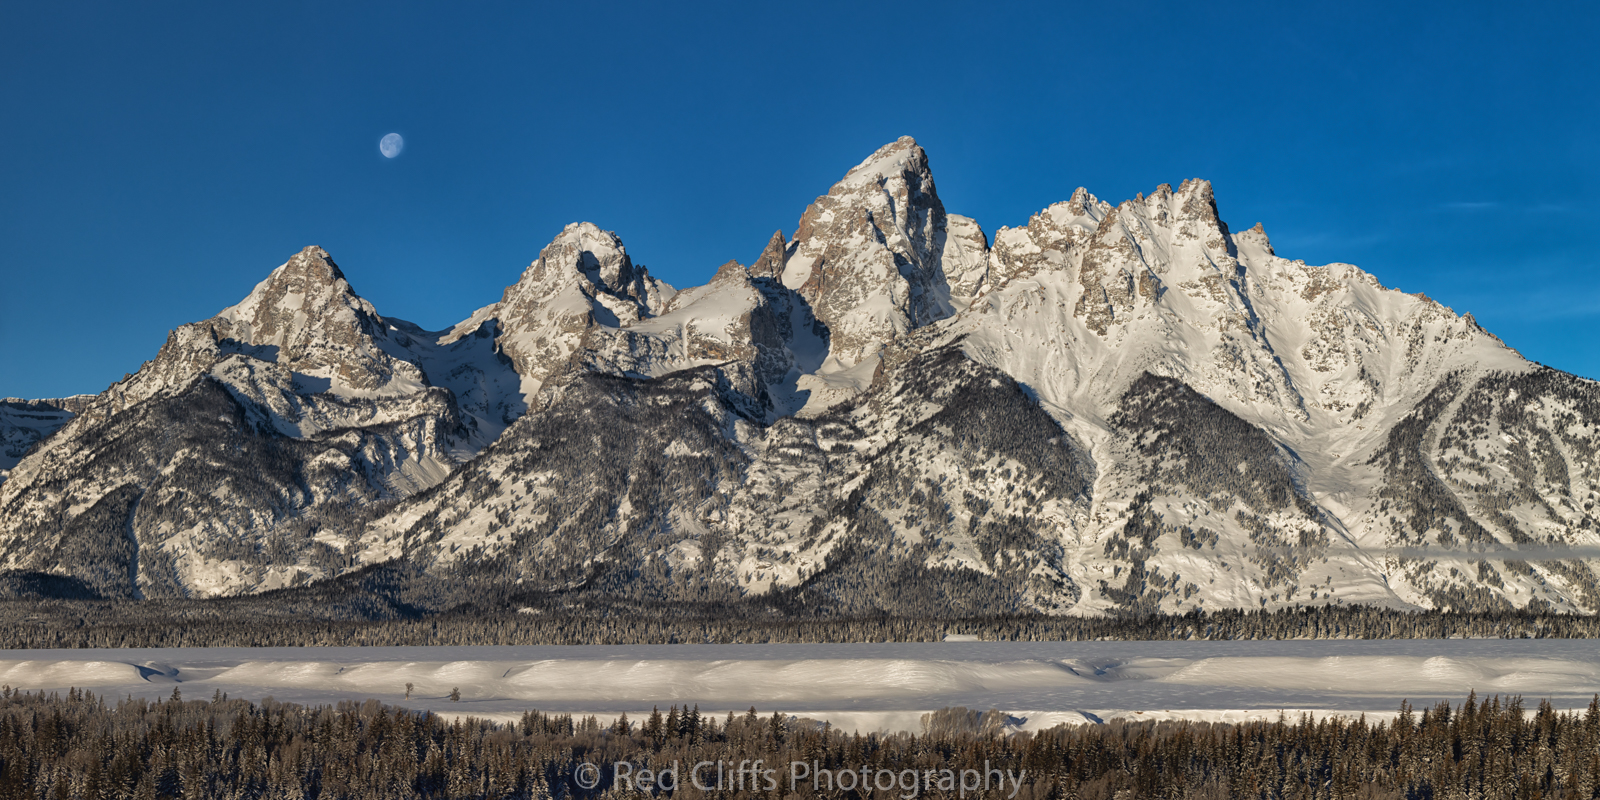 Moon setting the next morning over the Tetons